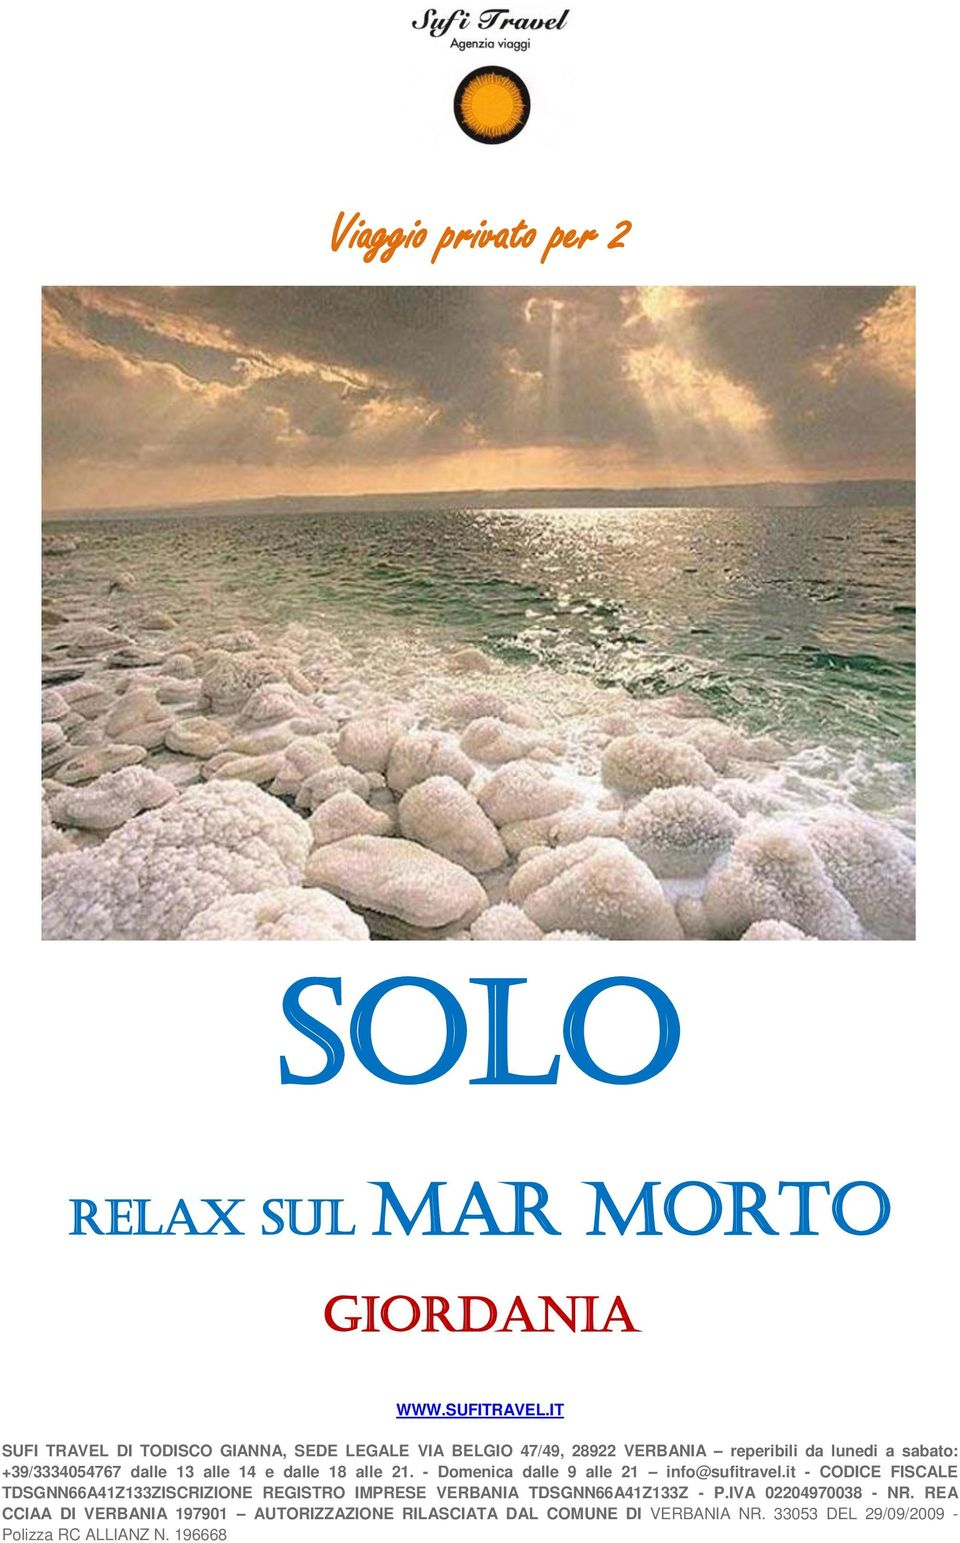 SOLO Relax